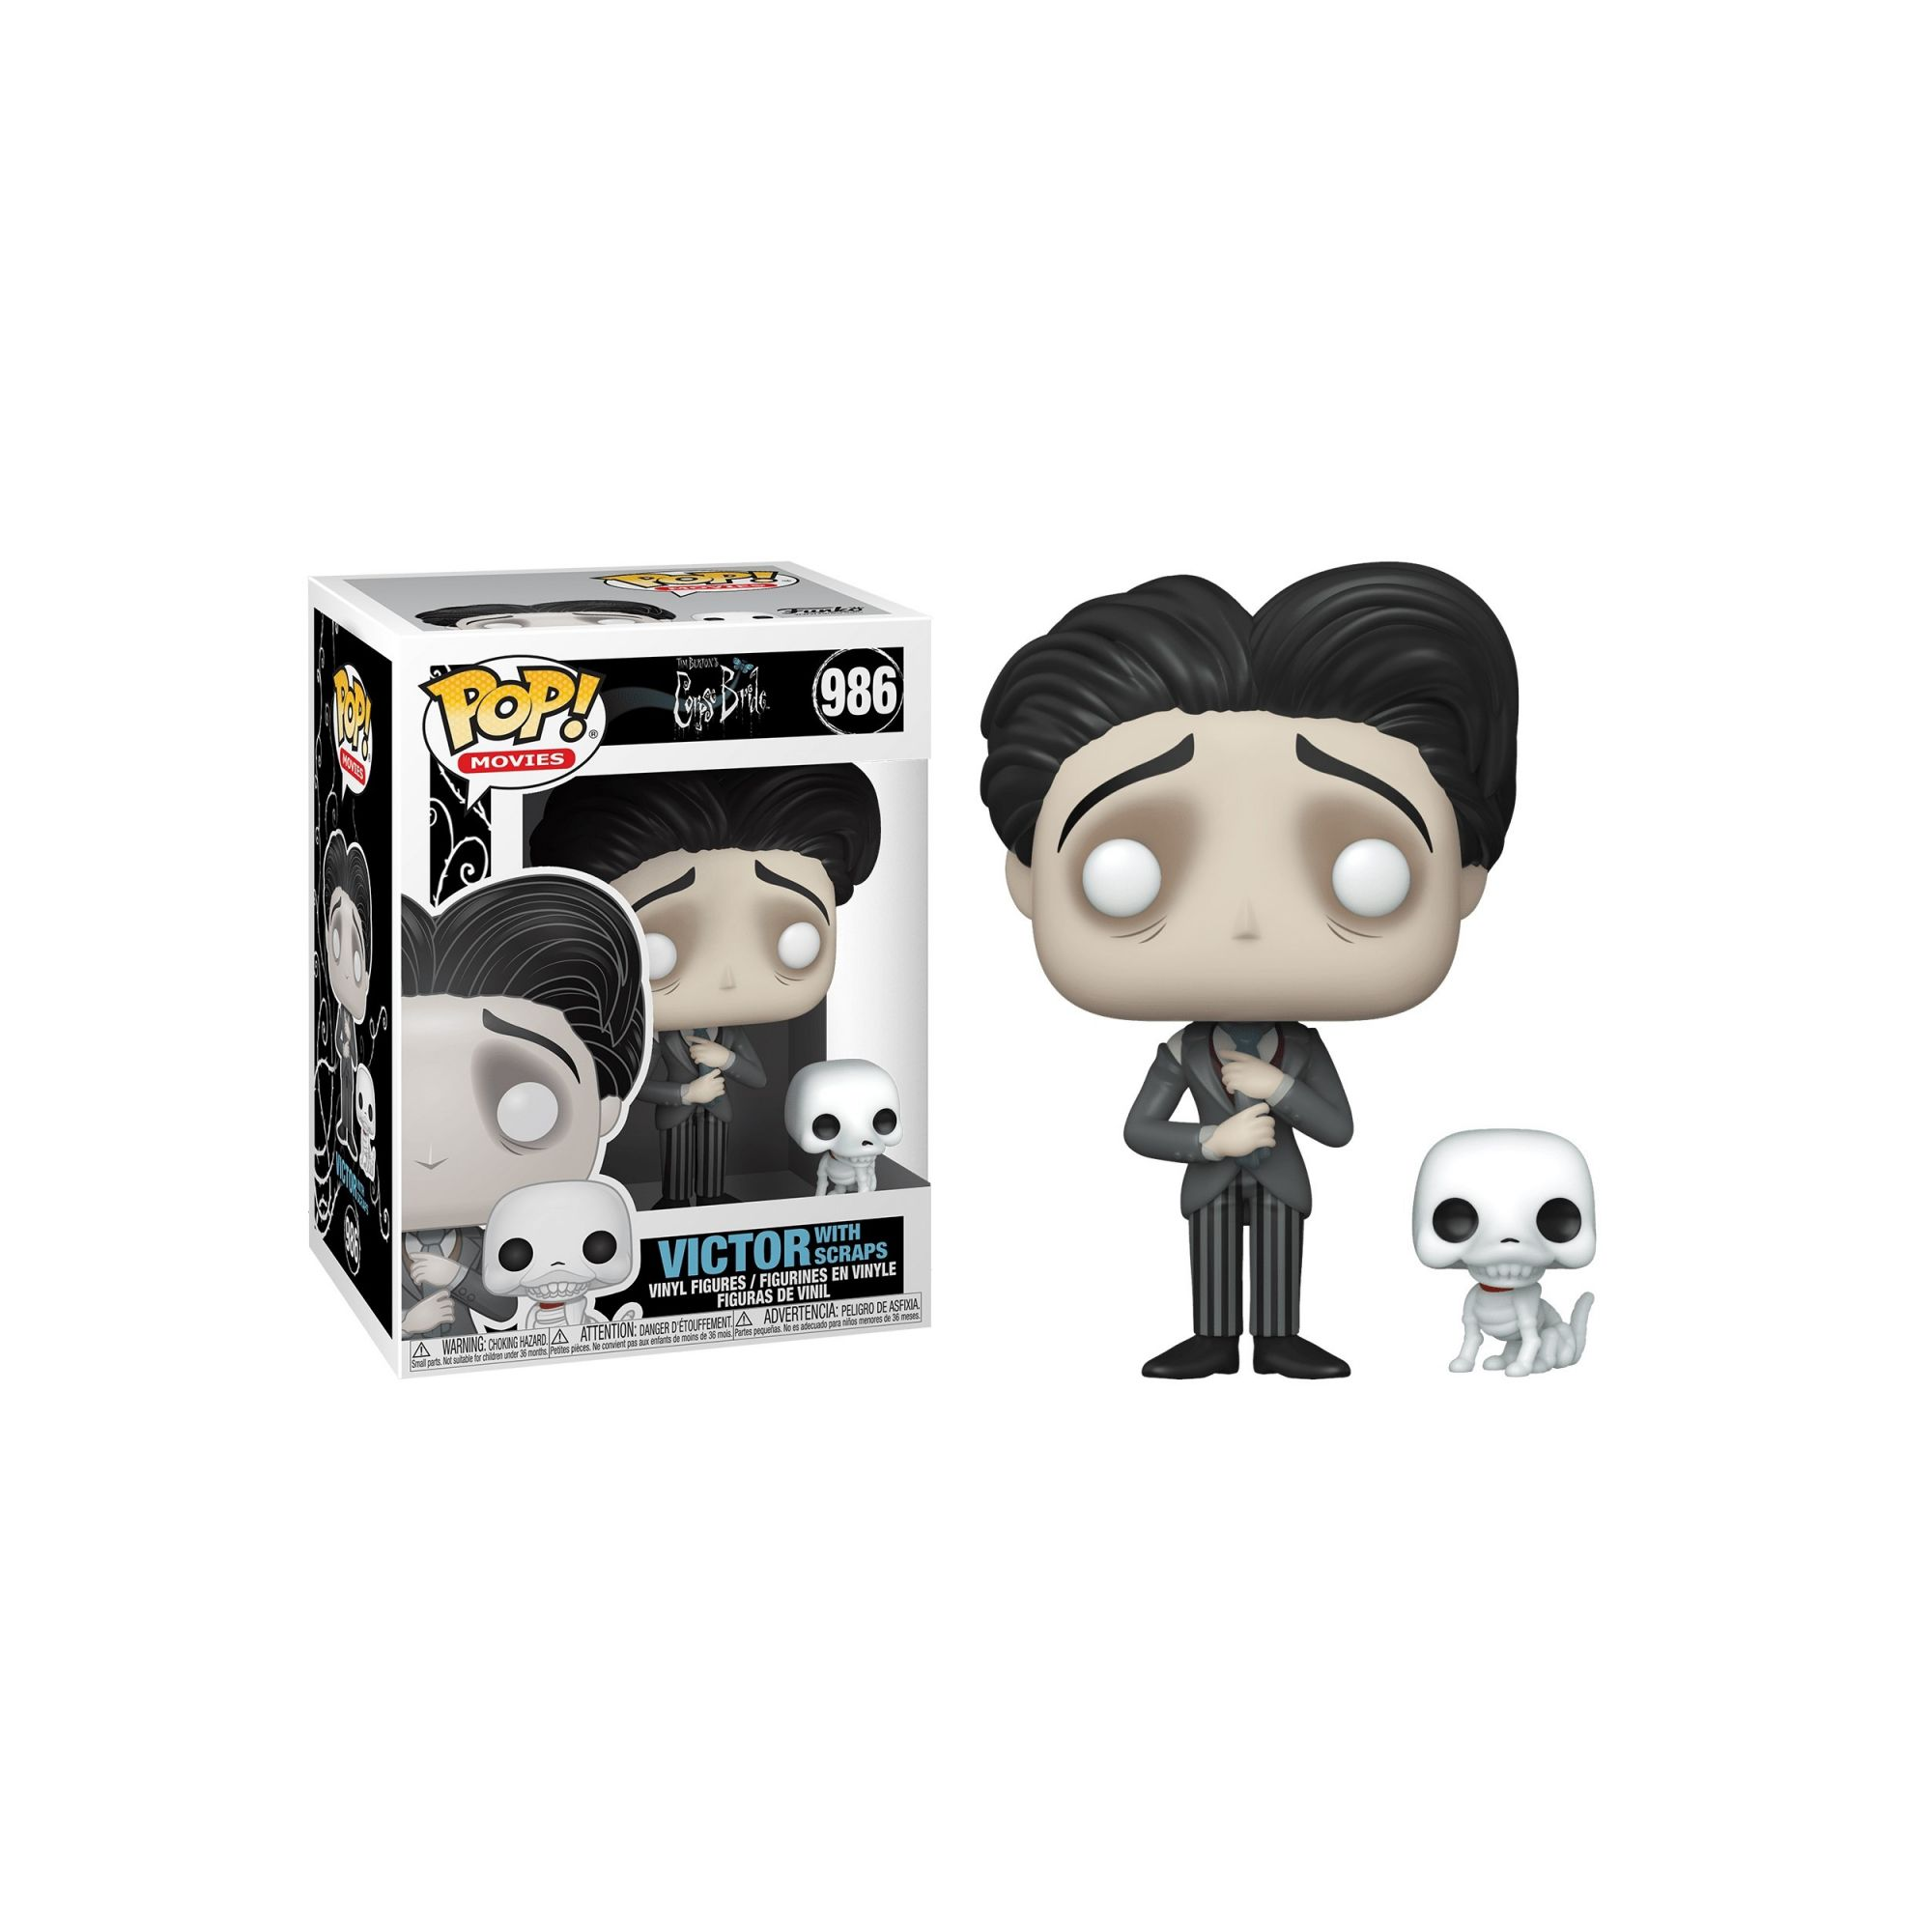 Funko Pop! & Buddy: Victor with Scraps: A Noiva Cadáver: (Corpse Bride)  #986 - Funko